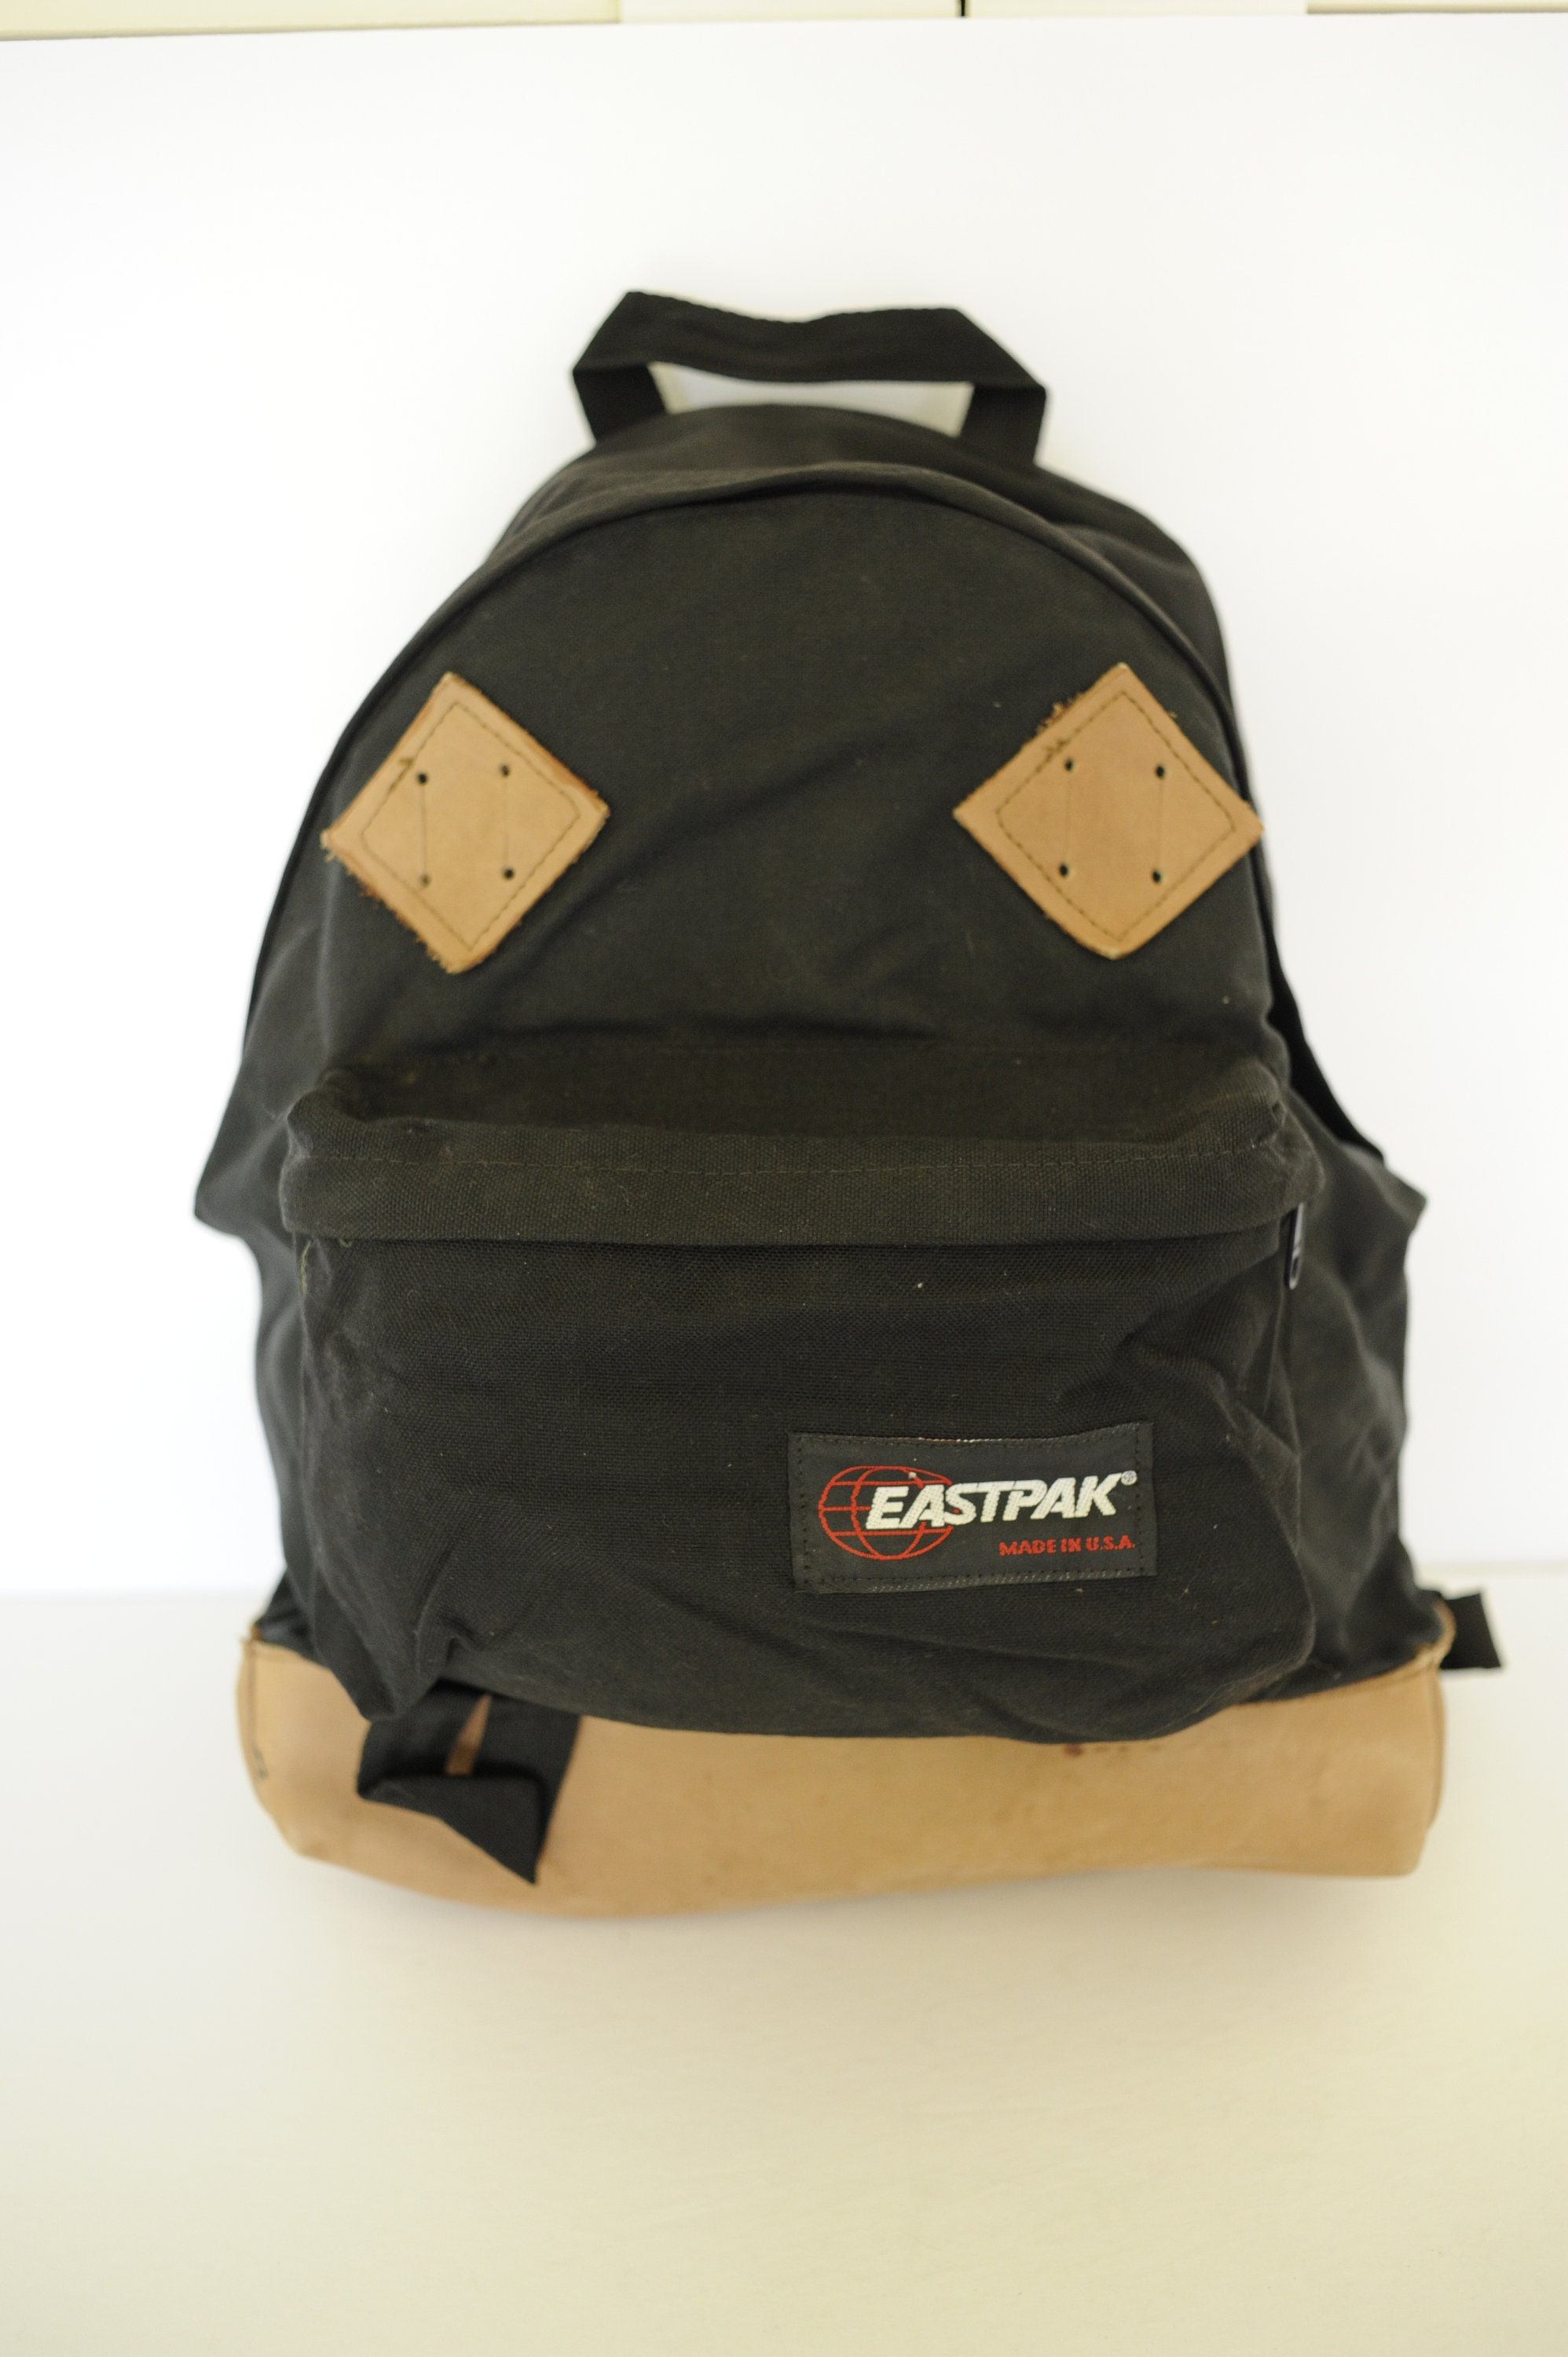 Vintage Eastpak Black Canvas Backpack with Leather Bottom